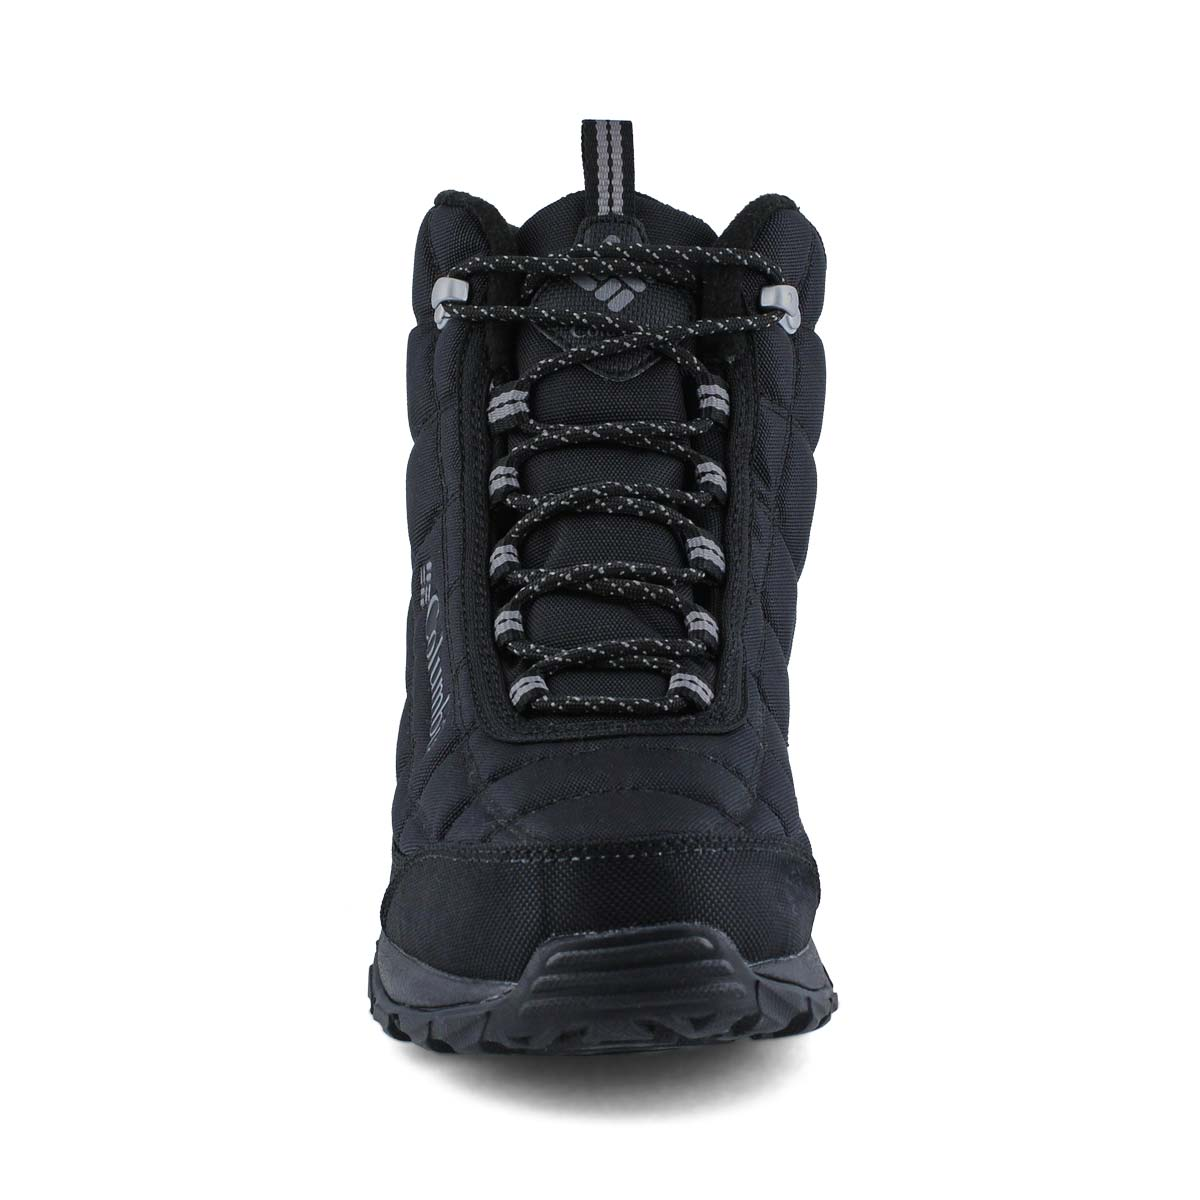 Mns Firecamp OmniTech black wtpf boot